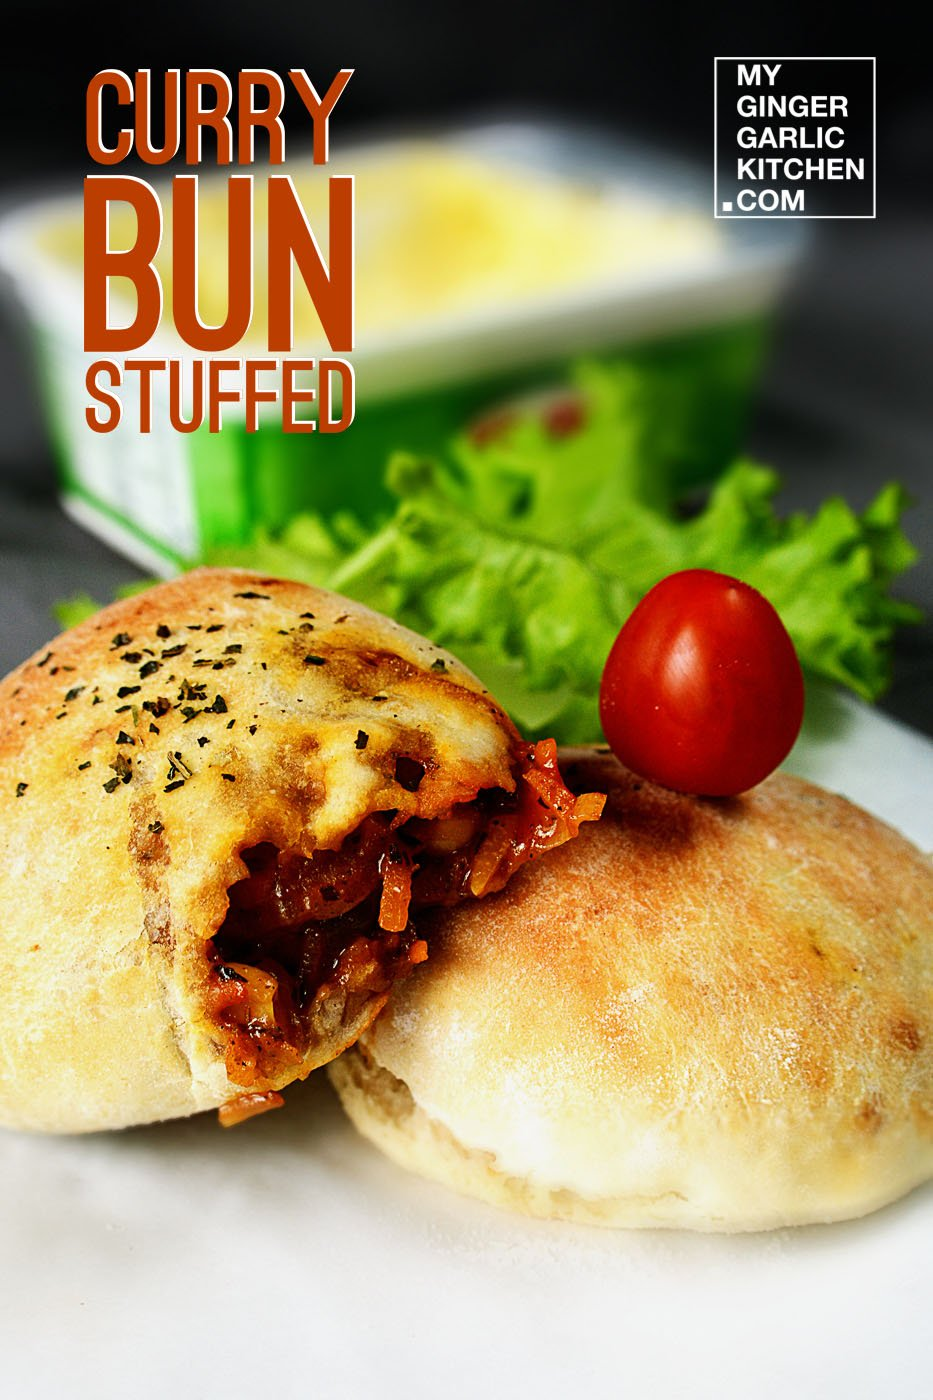 Image of Curry Stuffed Bun